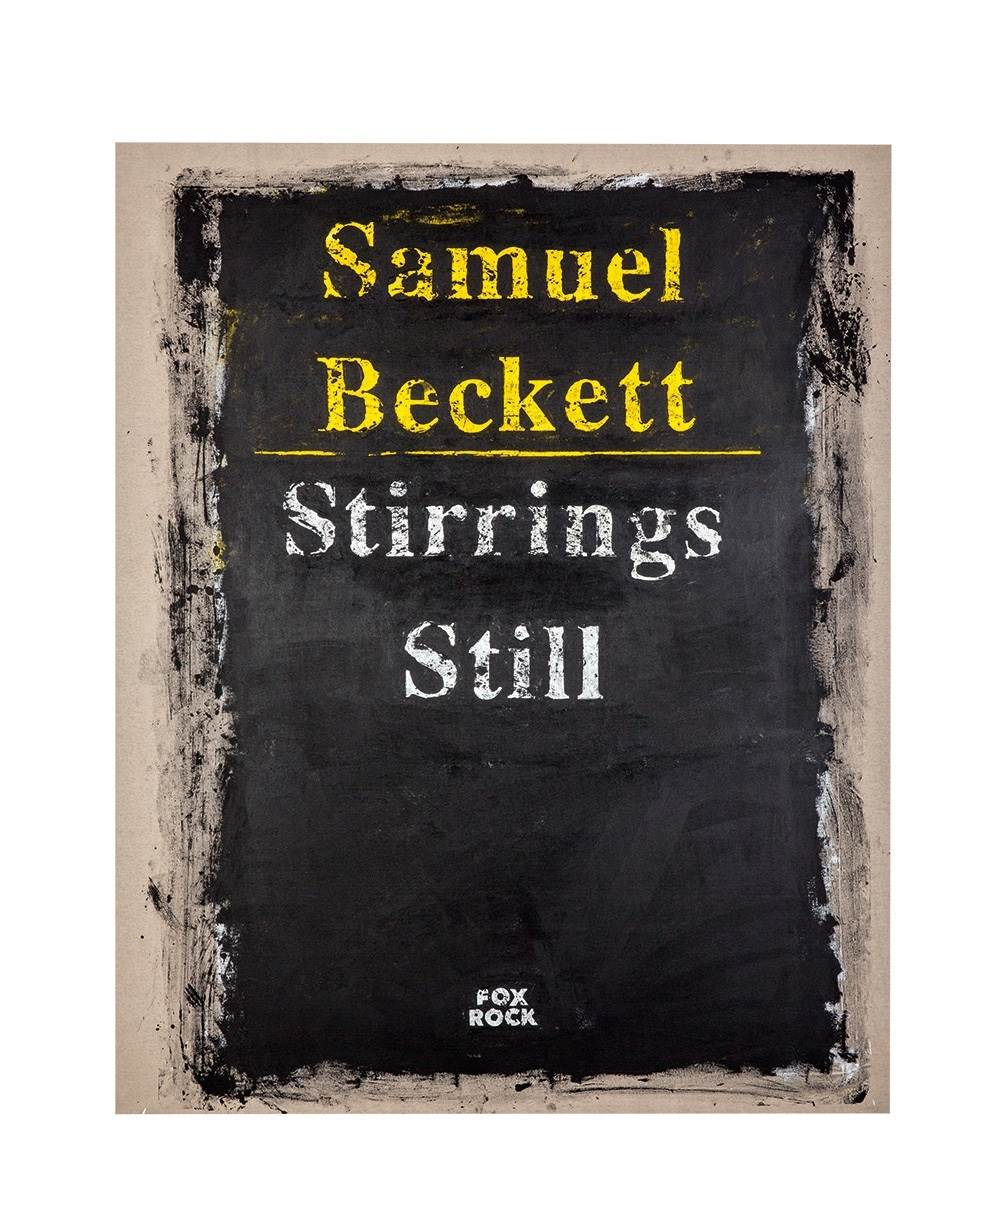 Cover #16 (Samuel Beckett), original Abstract Mixed Technique Painting by João  Louro